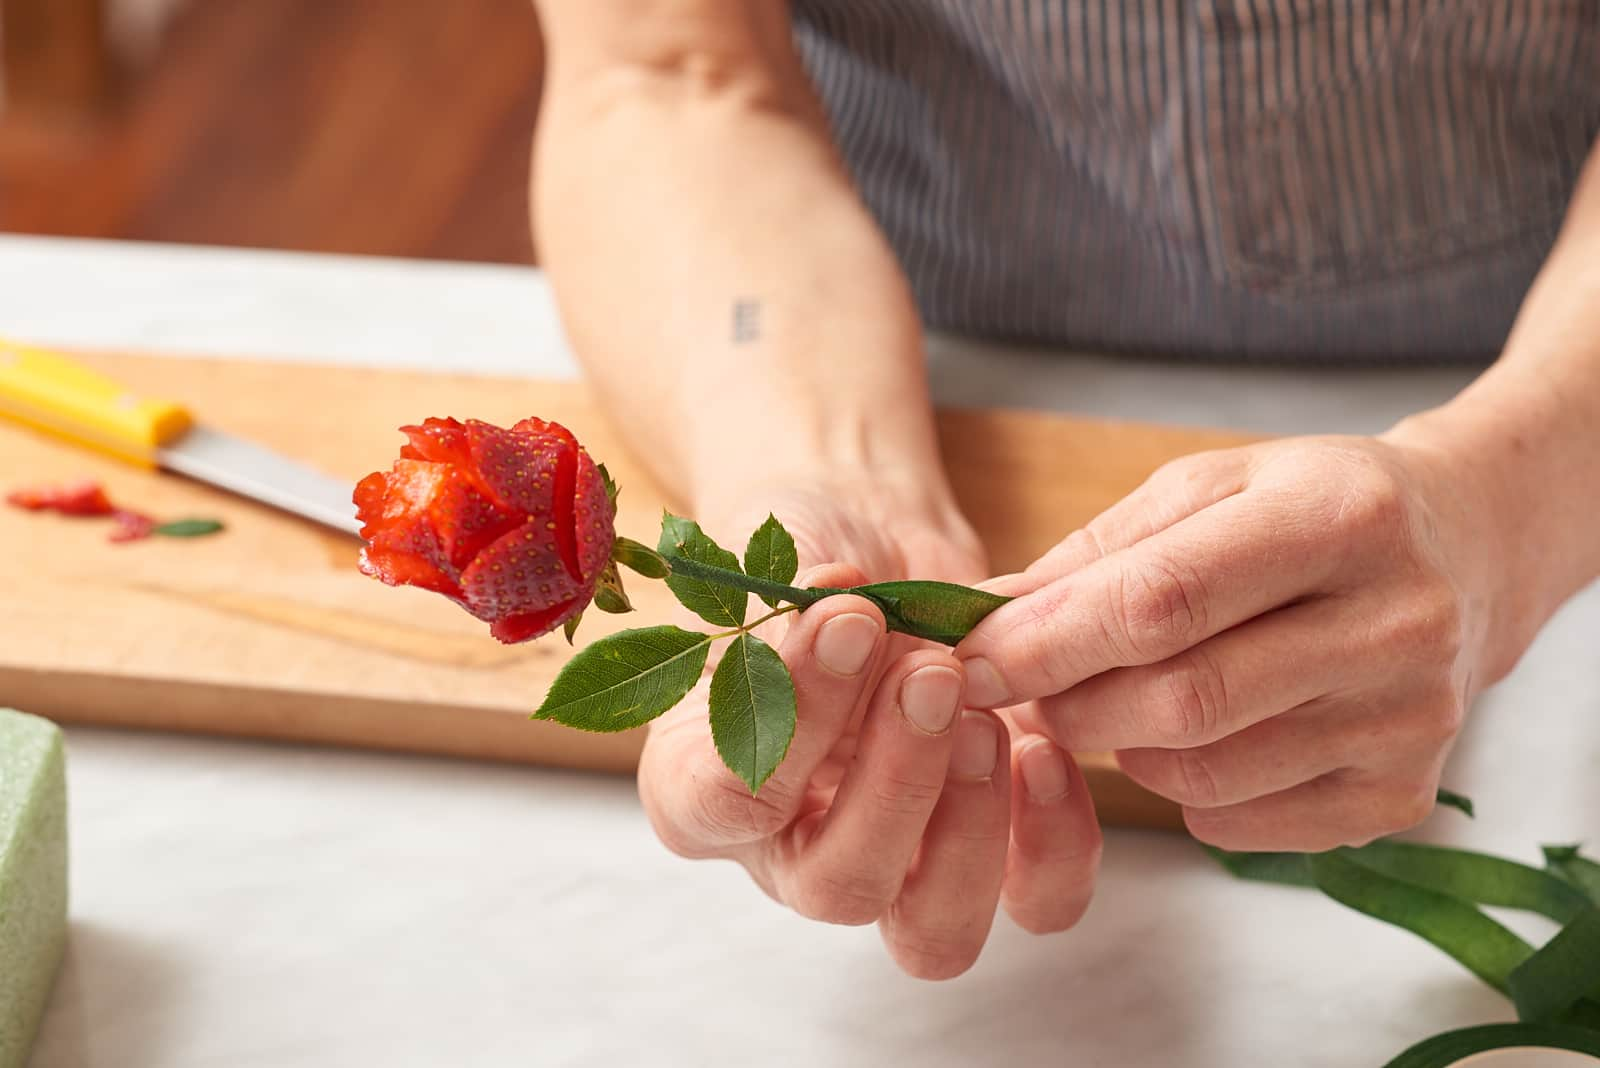 How To Make Strawberry Roses: gallery image 5